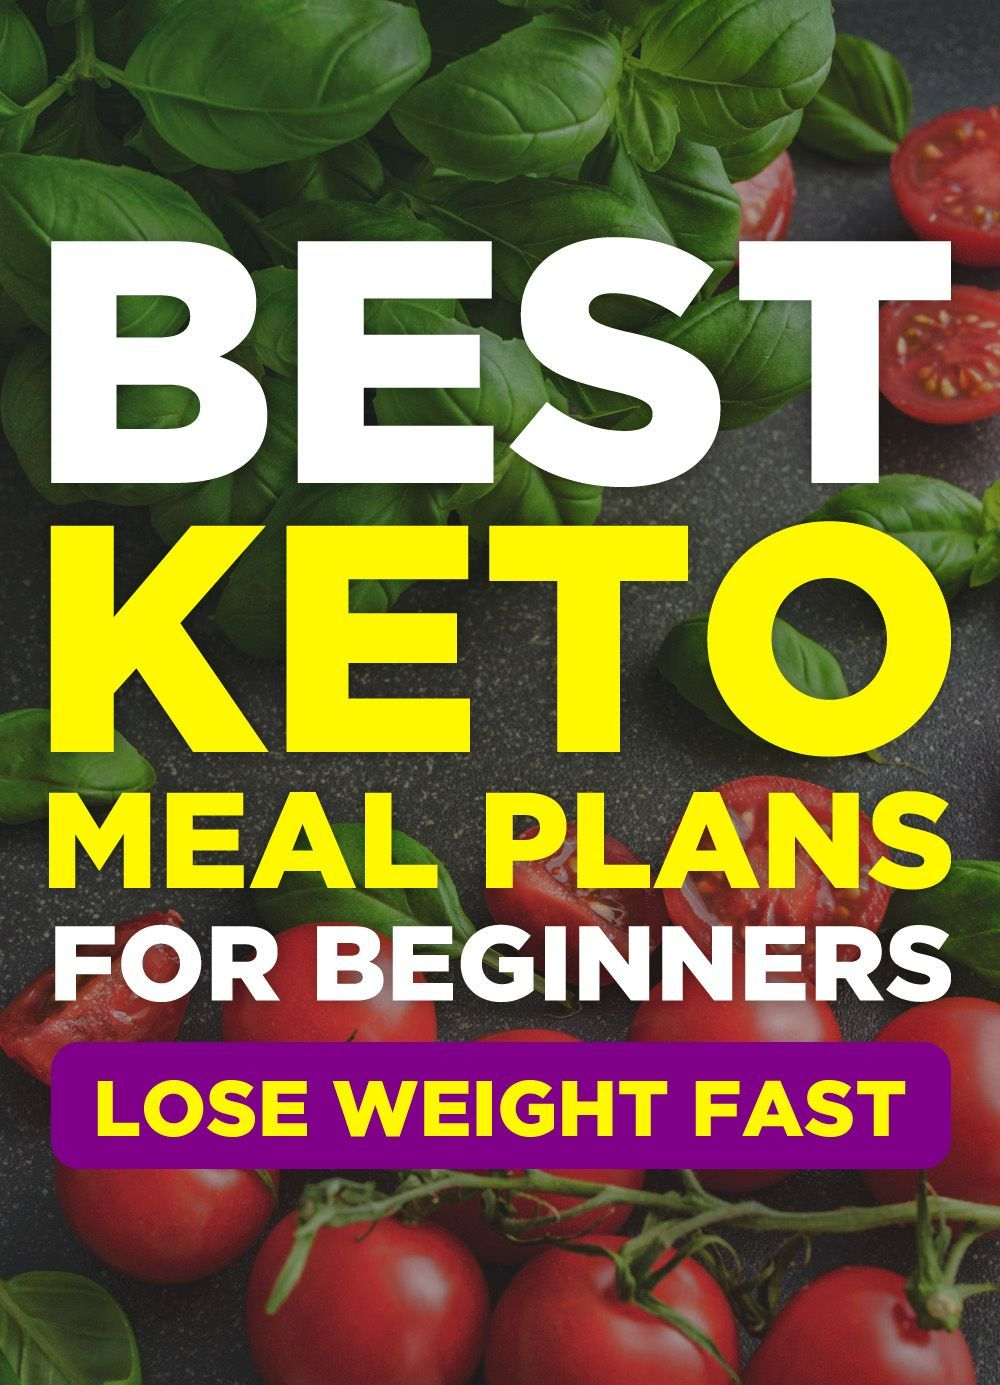 Lose Weight Fast, fit weight, 	keto diet easy recipes, 	low carb diet plan,  #myfitnesspalrecipes fit weight, 	keto diet easy recipes, 	low carb diet plan,  cleaning diet, 	gym workouts to lose weight, 	keto diet and diabetes,  ruled me ketogenic diet, 	weight loss for beginners, 	weight loss foods,  keto diet milk, 	keto diet 101, 	5 2 diet recipes,  myfitnesspal recipes, 	recipes foods, 	lose weight in a week,  lose weight for good, 	healthy diets to lose weight, 	low fat cheeses,  how keto di #myfitnesspalrecipes